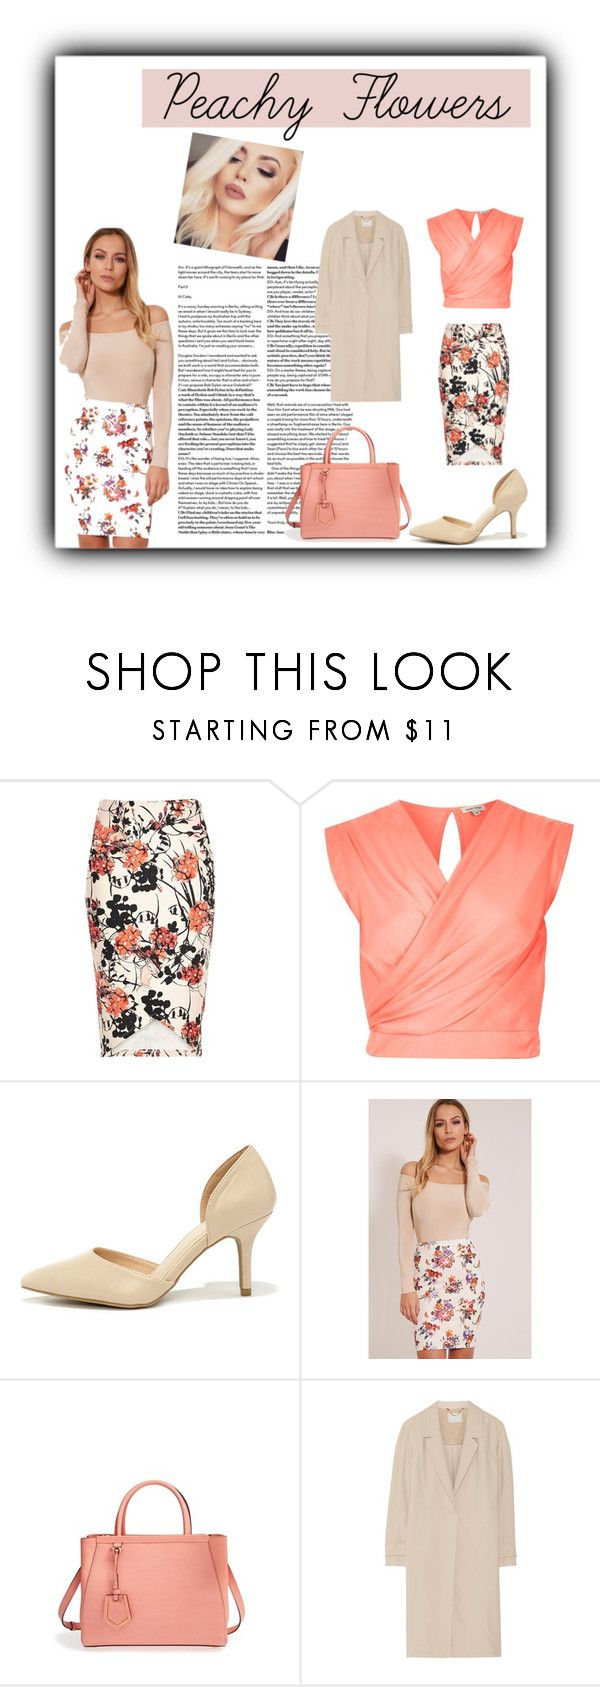 """""""Your Touch, My Comfort and My Lullaby"""" by saintlaurentsputa ❤ liked on Polyvore featuring River Island, Wild Diva, NYX, Fendi and Jason Wu"""